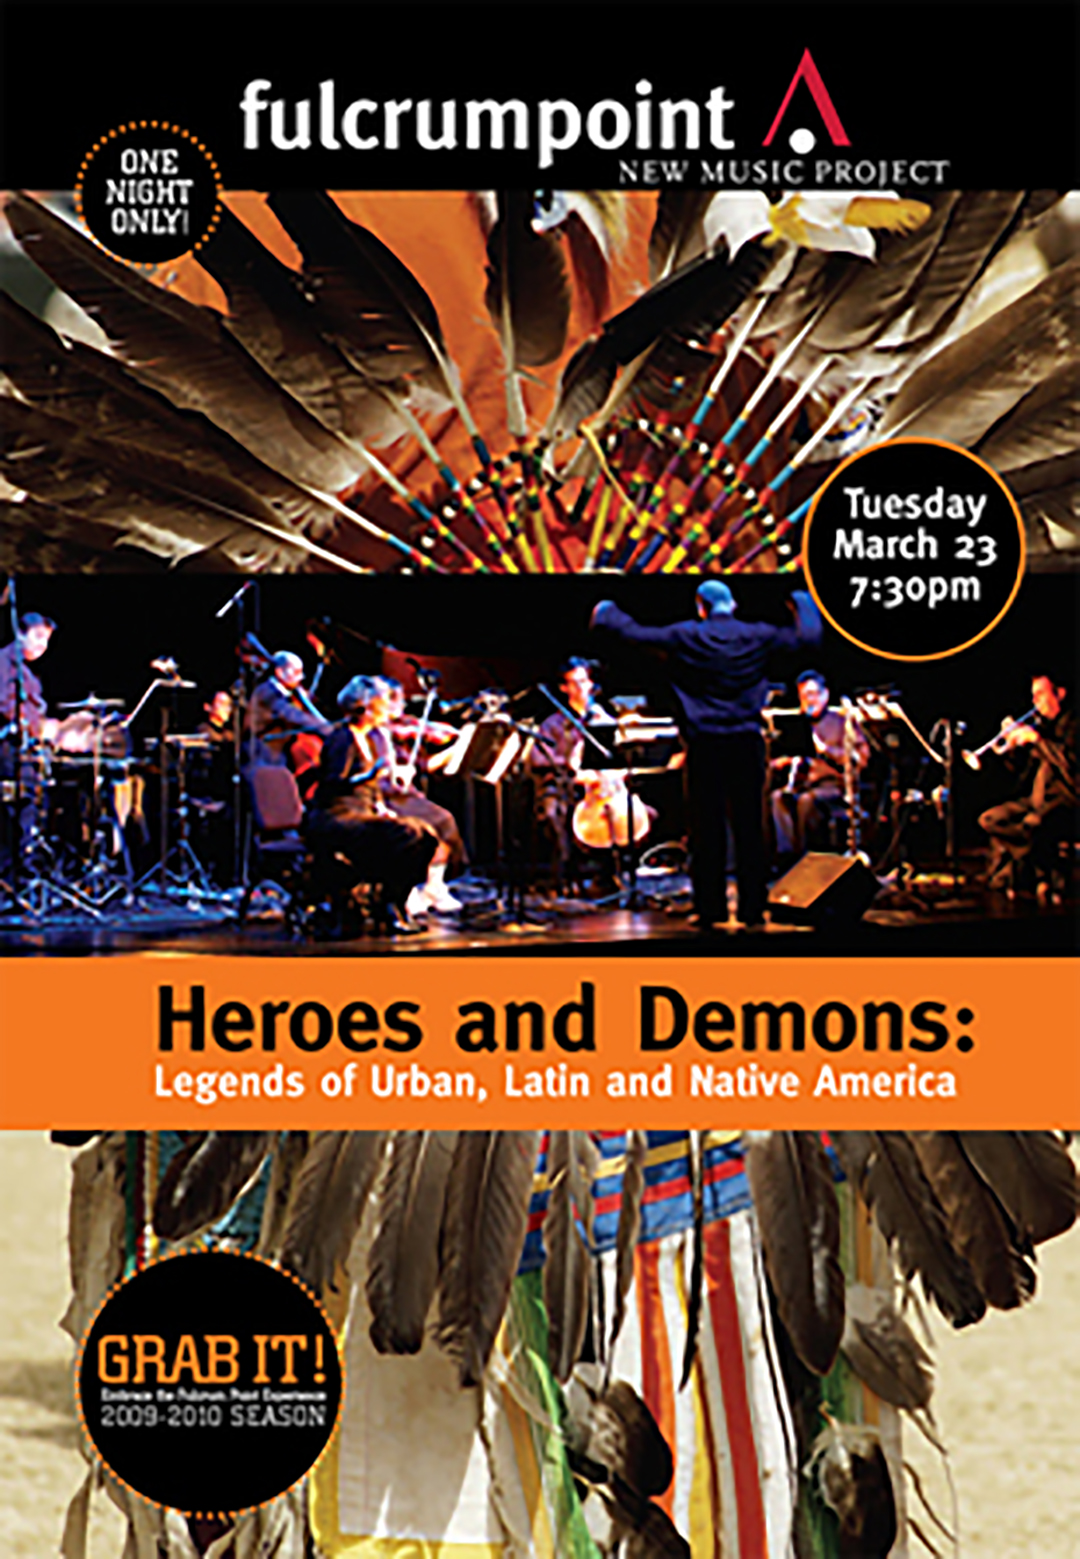 Heroes and Demons: Legends of Urban, Latin and Native America